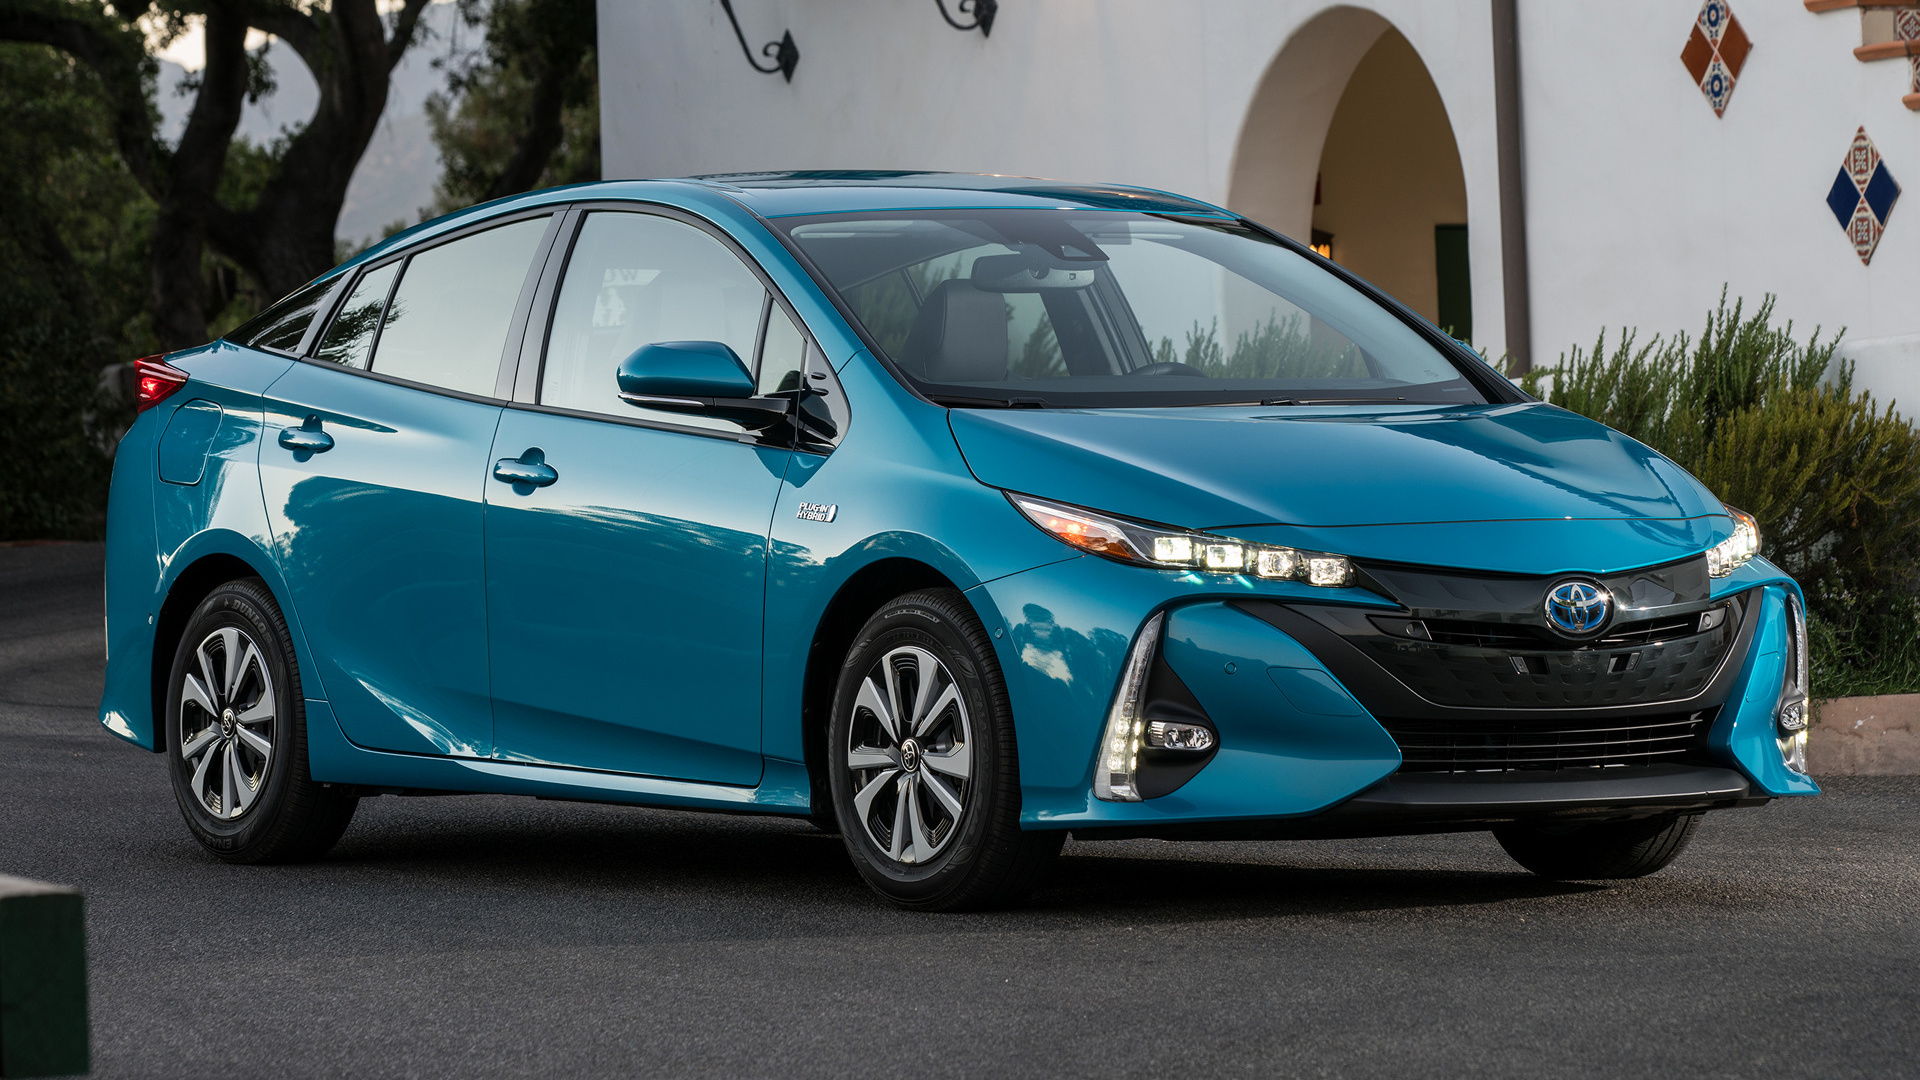 Toyota Prius Prime Plug-in Hybrid (2017) US Wallpapers and ...